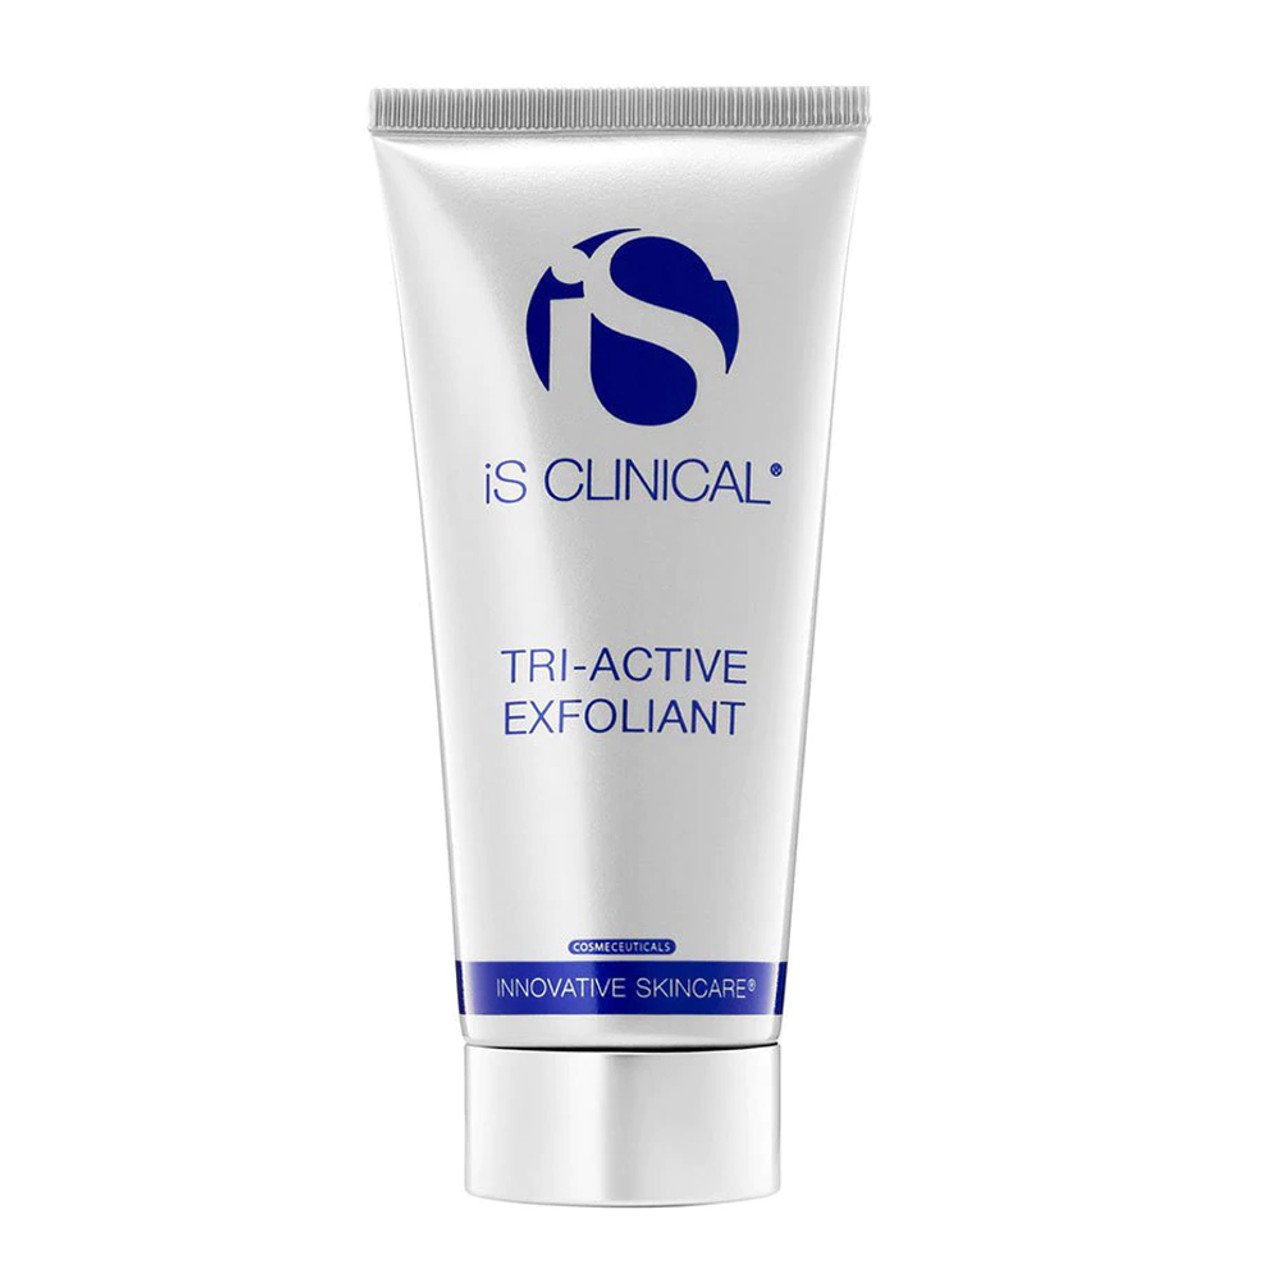 iS Clinical Tri-Active Exfoliant (discontinued) BeautifiedYou.com